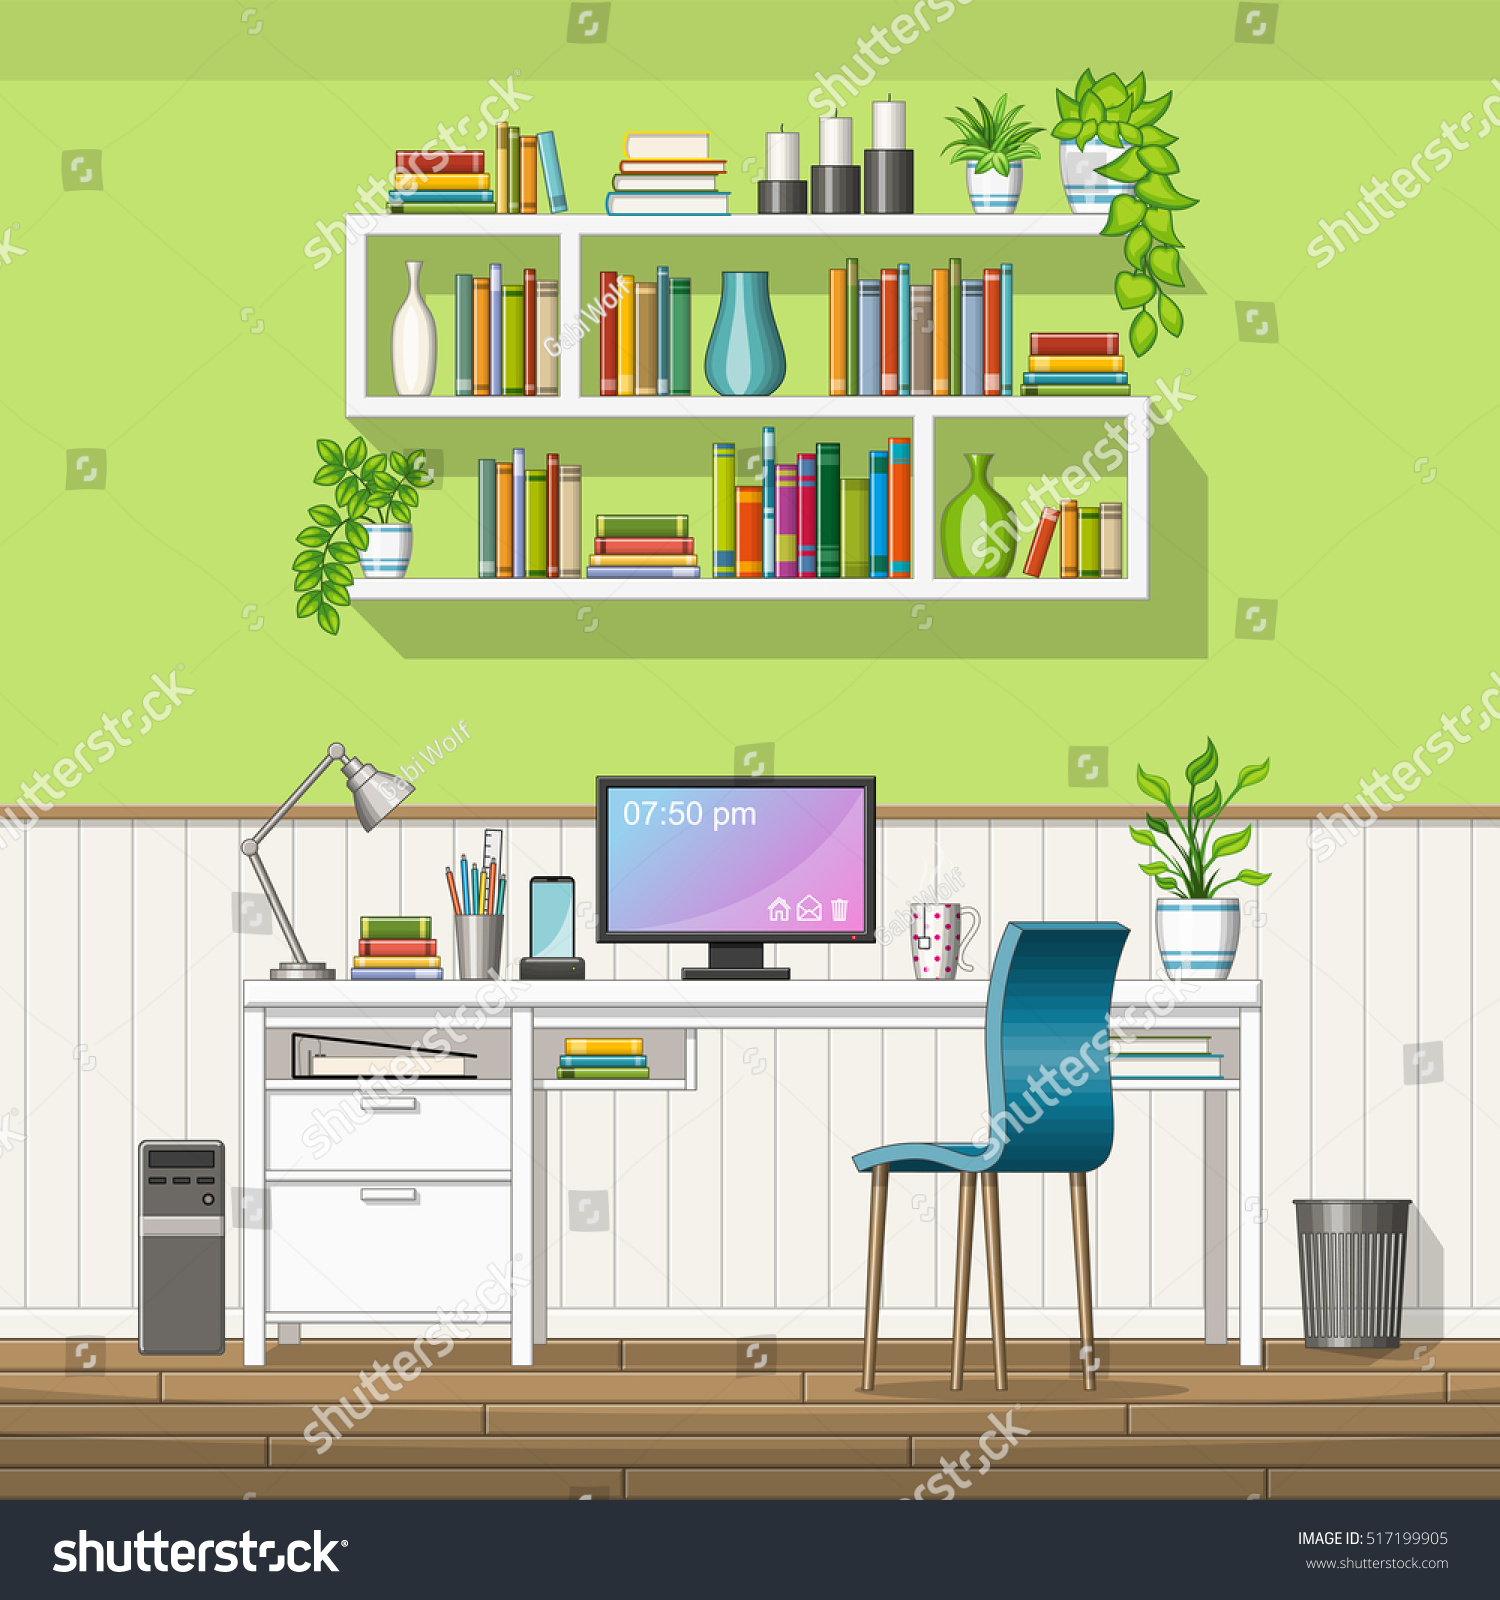 Illustration Interior Equipment Home Office Stock Vector